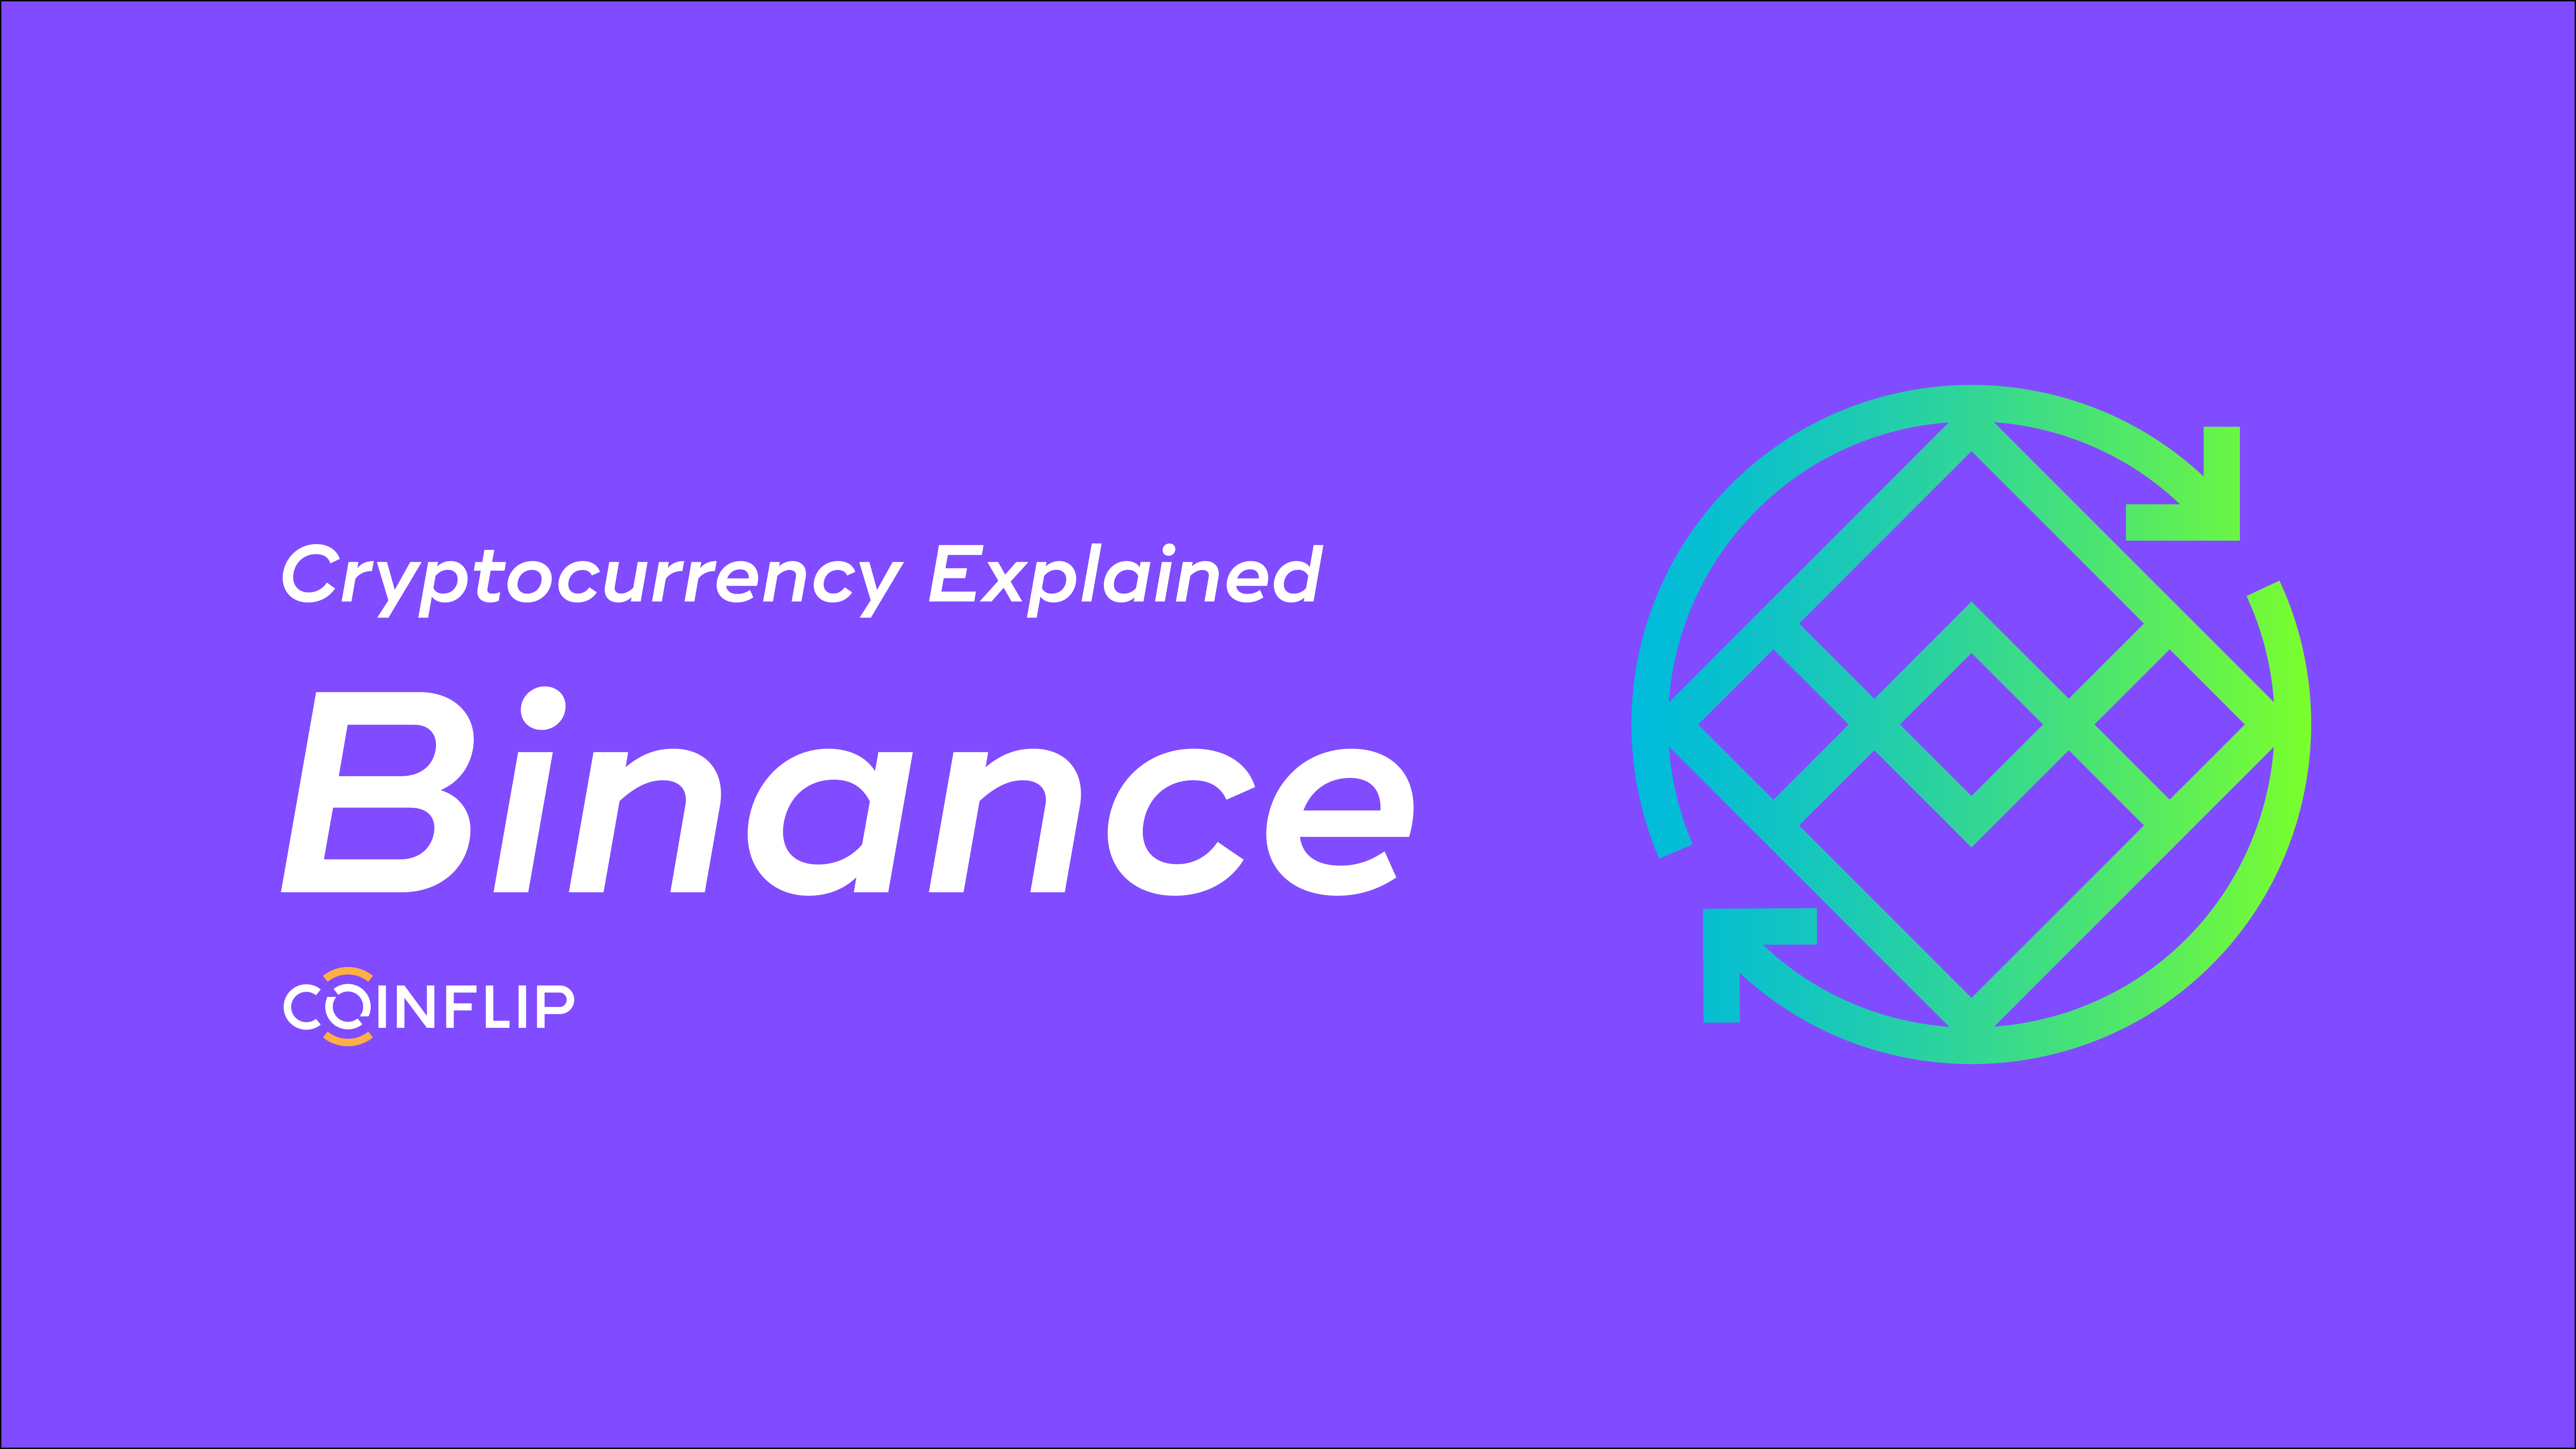 Cover Image for What is Binance? How Can You Buy It? CoinFlip Explains